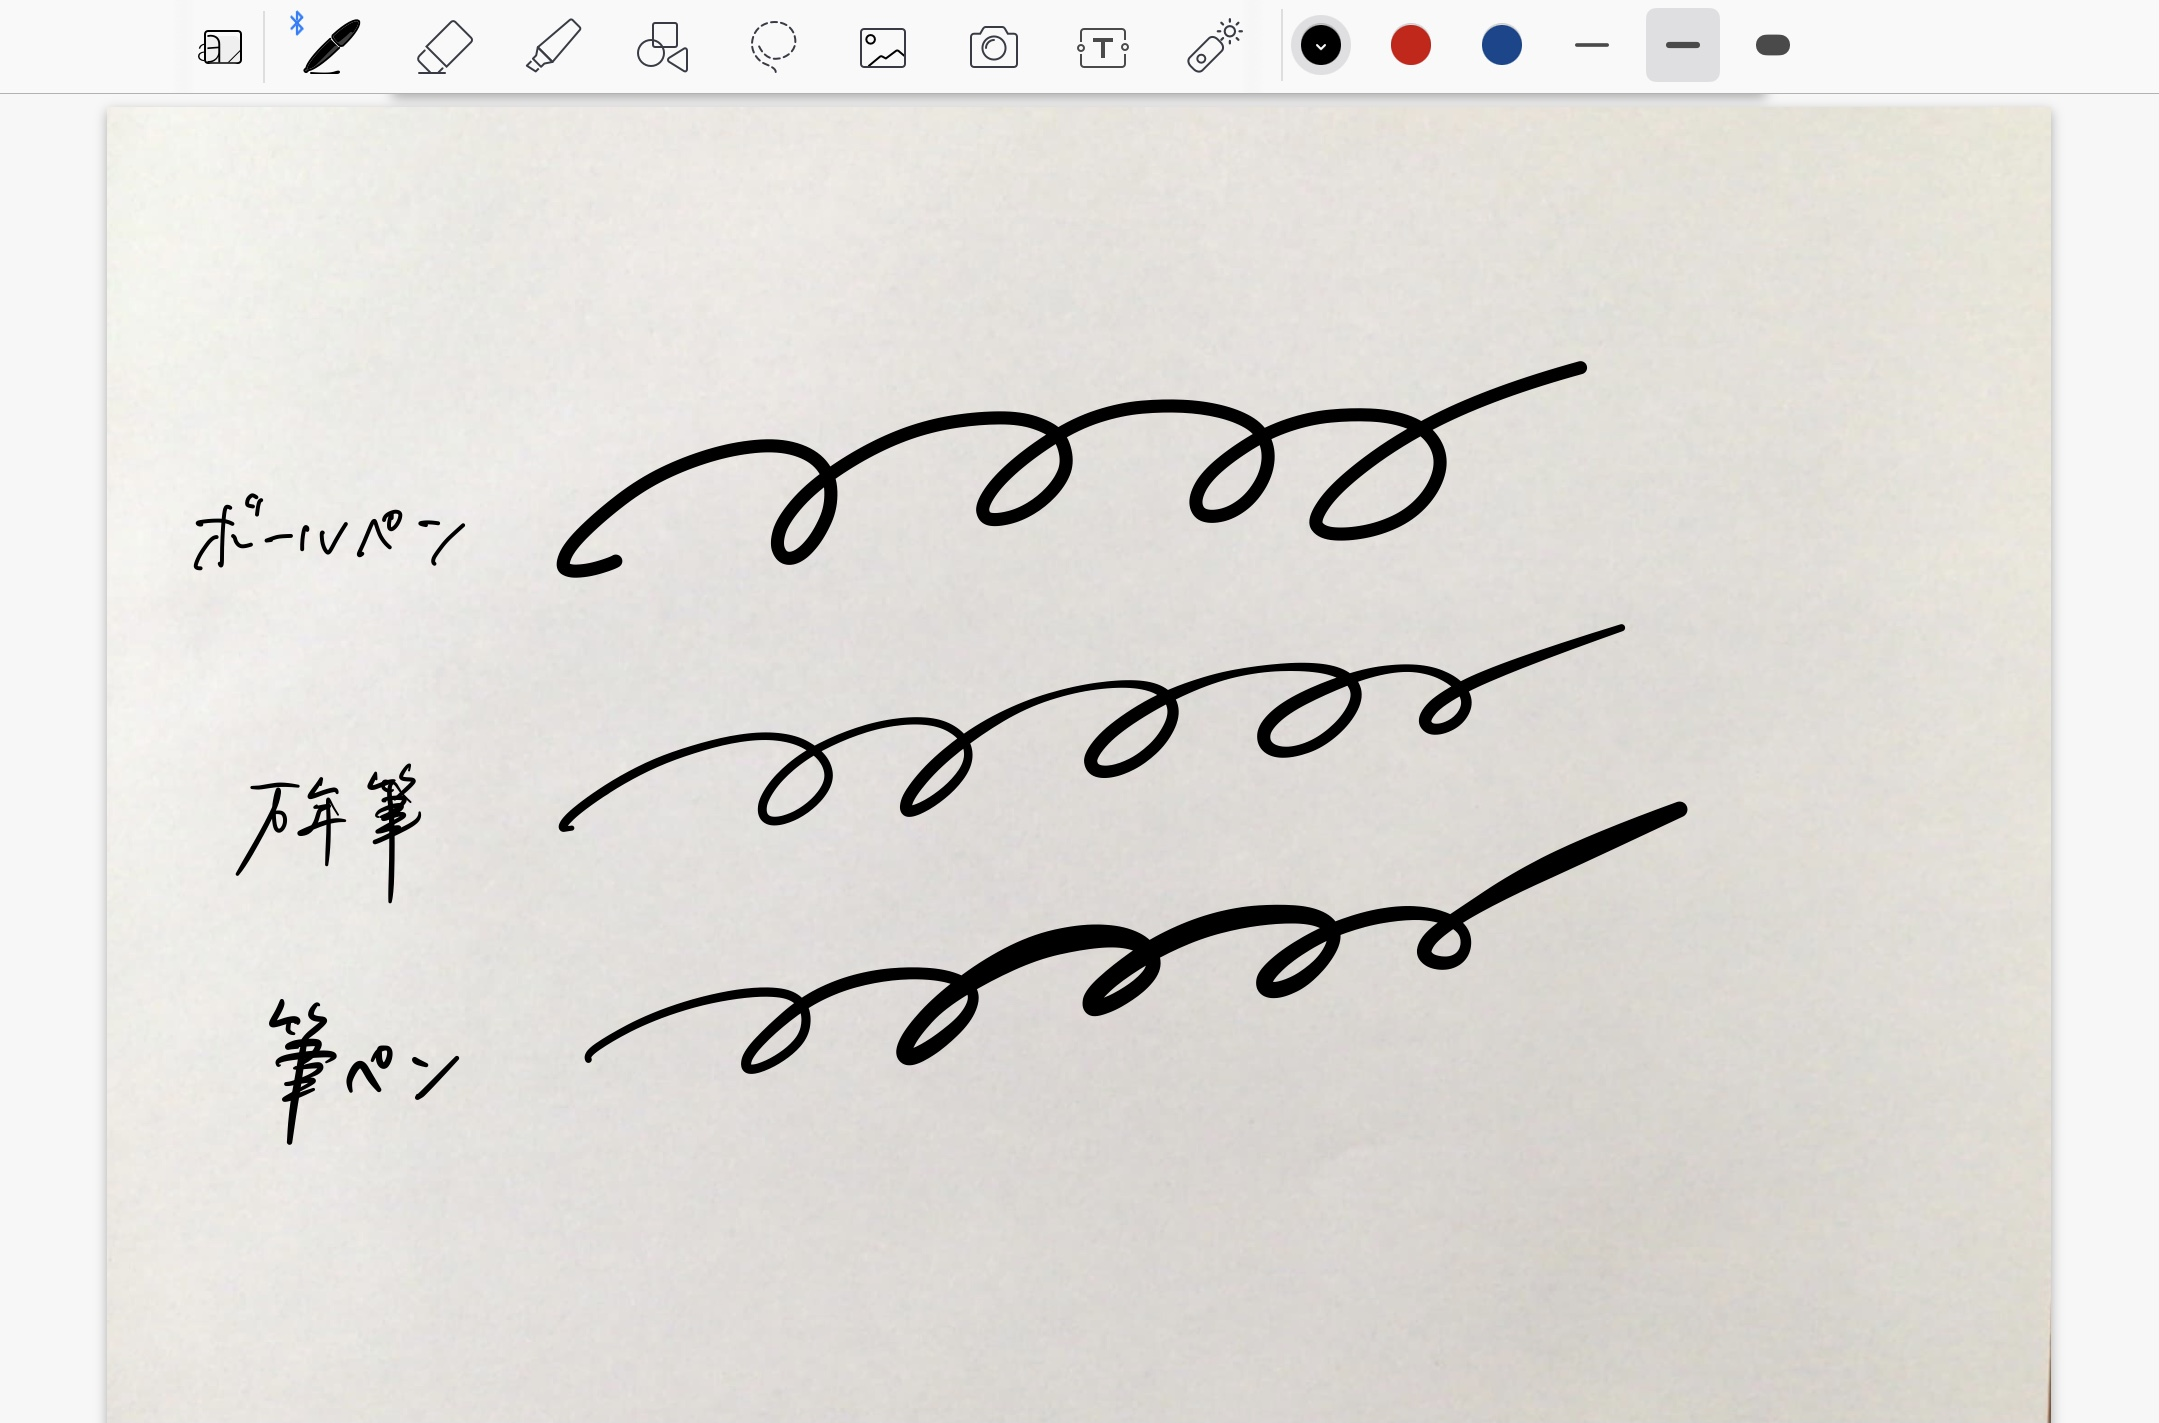 GoodNotes5に直接書き込み